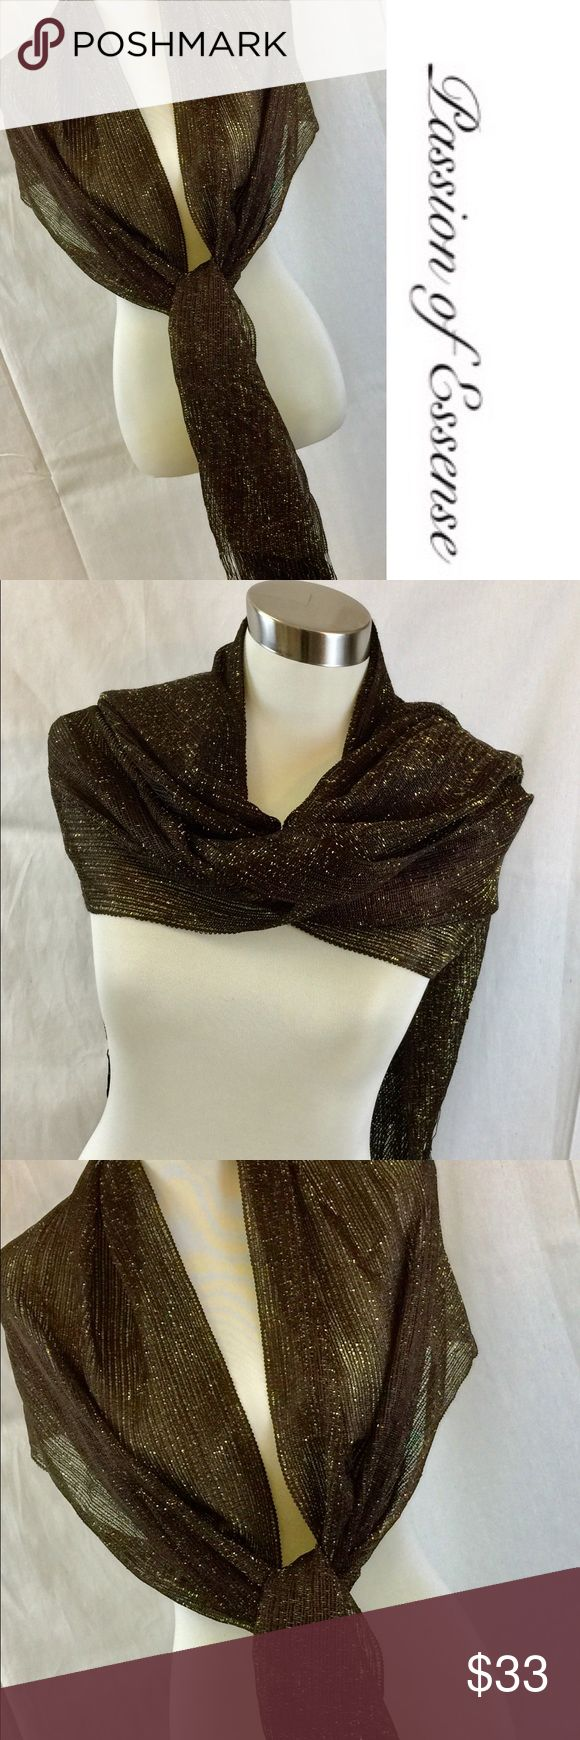 Metallic Brown Long Scarf & Wrap This Luxurious Brown Scarf are  Metallic thread and Elegant Tassels it can be style long, infinity, loop, twisted, or double around the neck. You can style this to a gorgeous evening party, or any special event. Great idea for a gift. 80% rayon 20% Metallic Dry Clean Only. Passion of Essense Accessories Scarves & Wraps